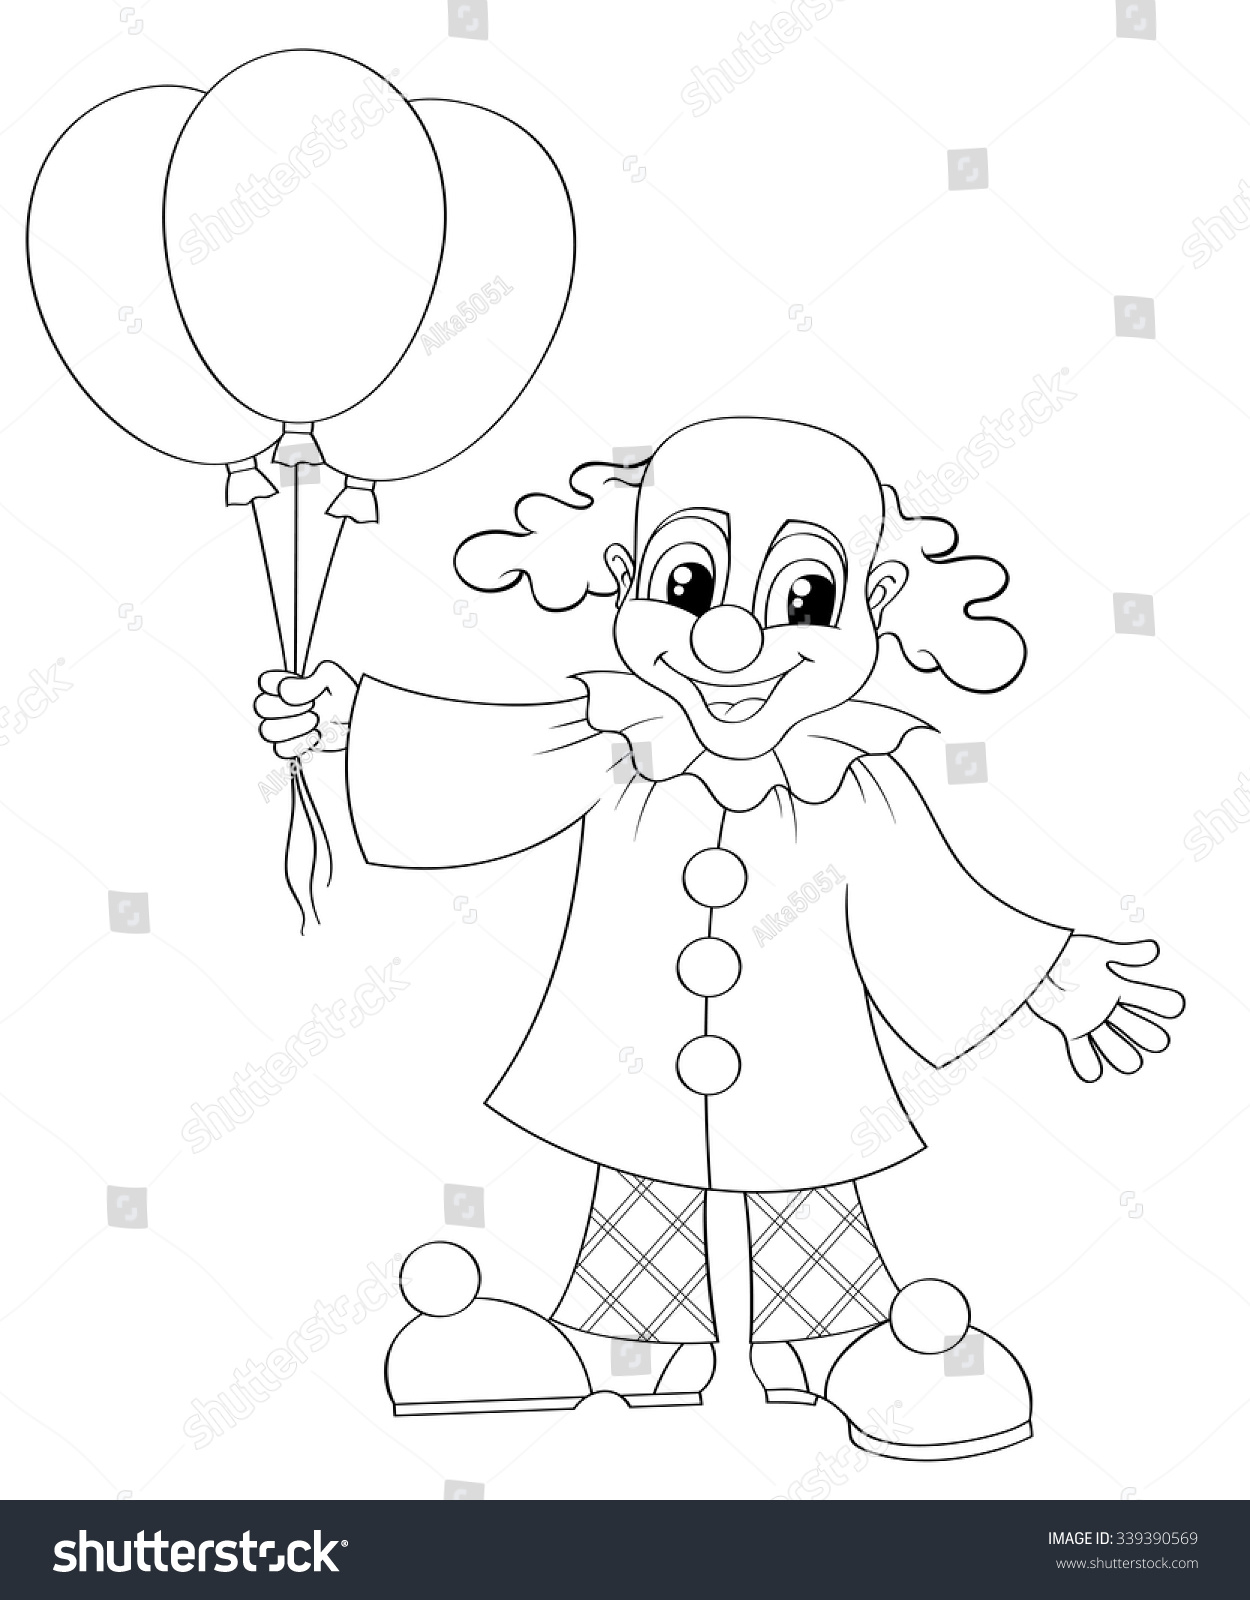 Funny Clown Balloons Black White Vector Stock Vector 339390569 ...